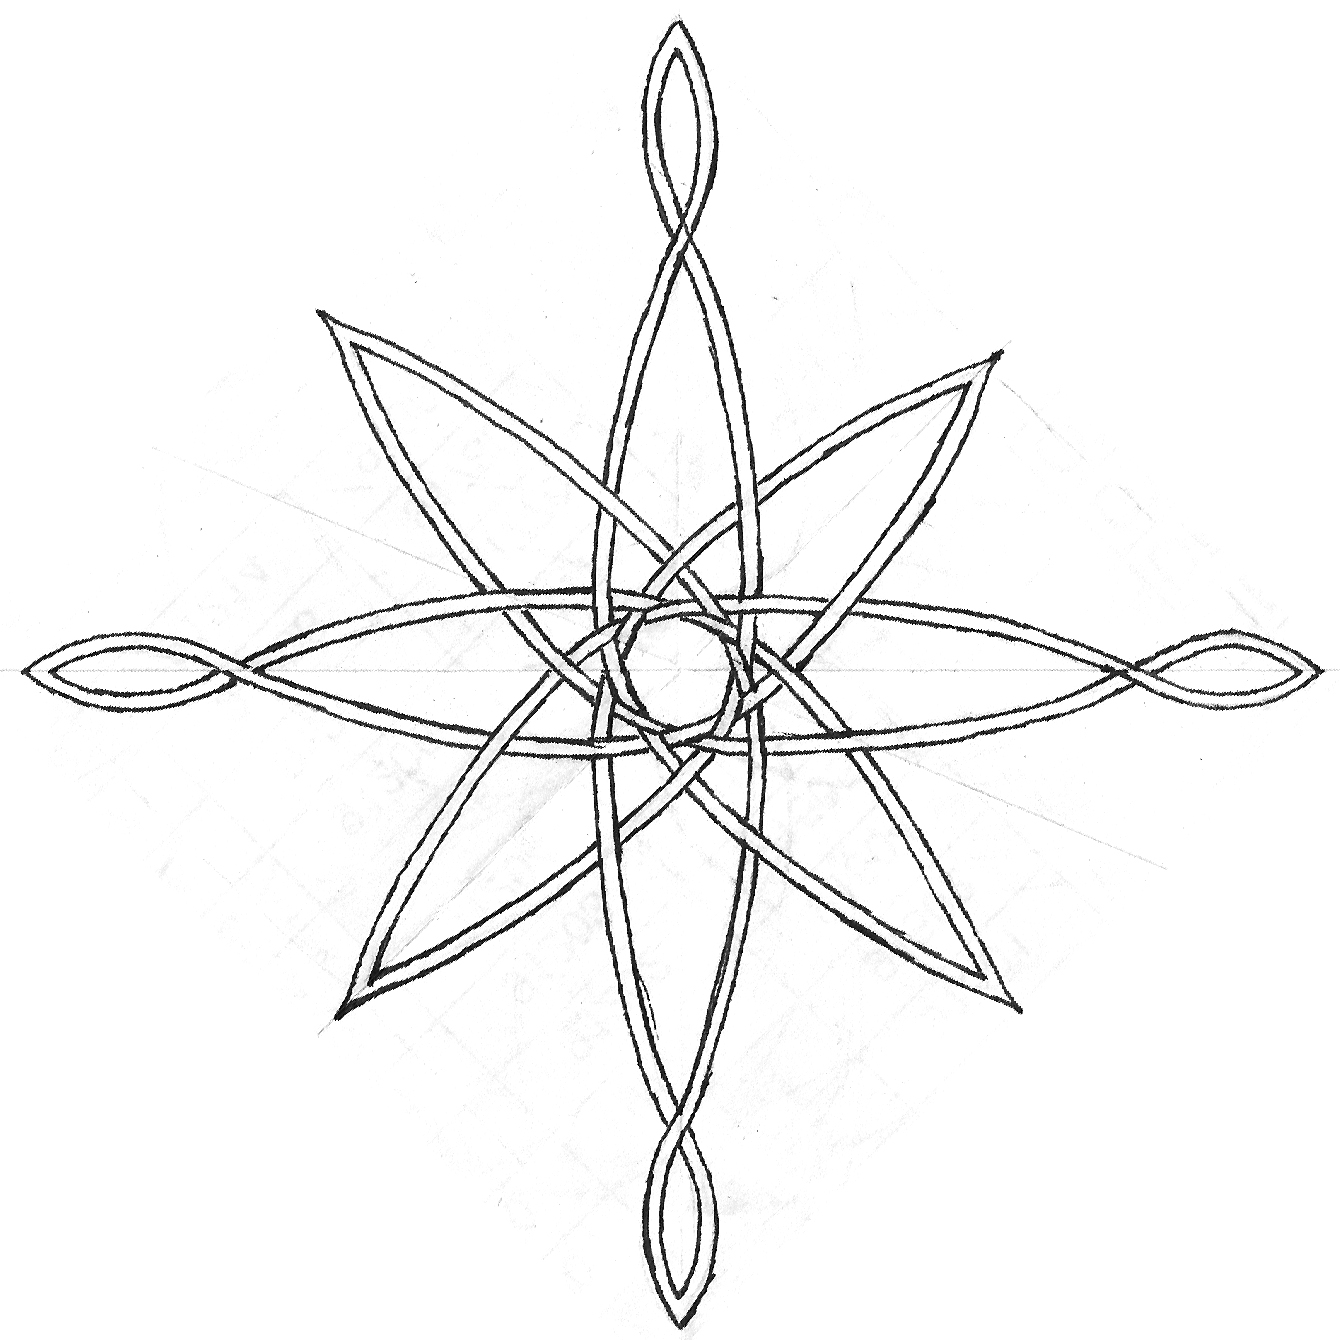 1340x1340 Compass Rose Sketch By Tat Board